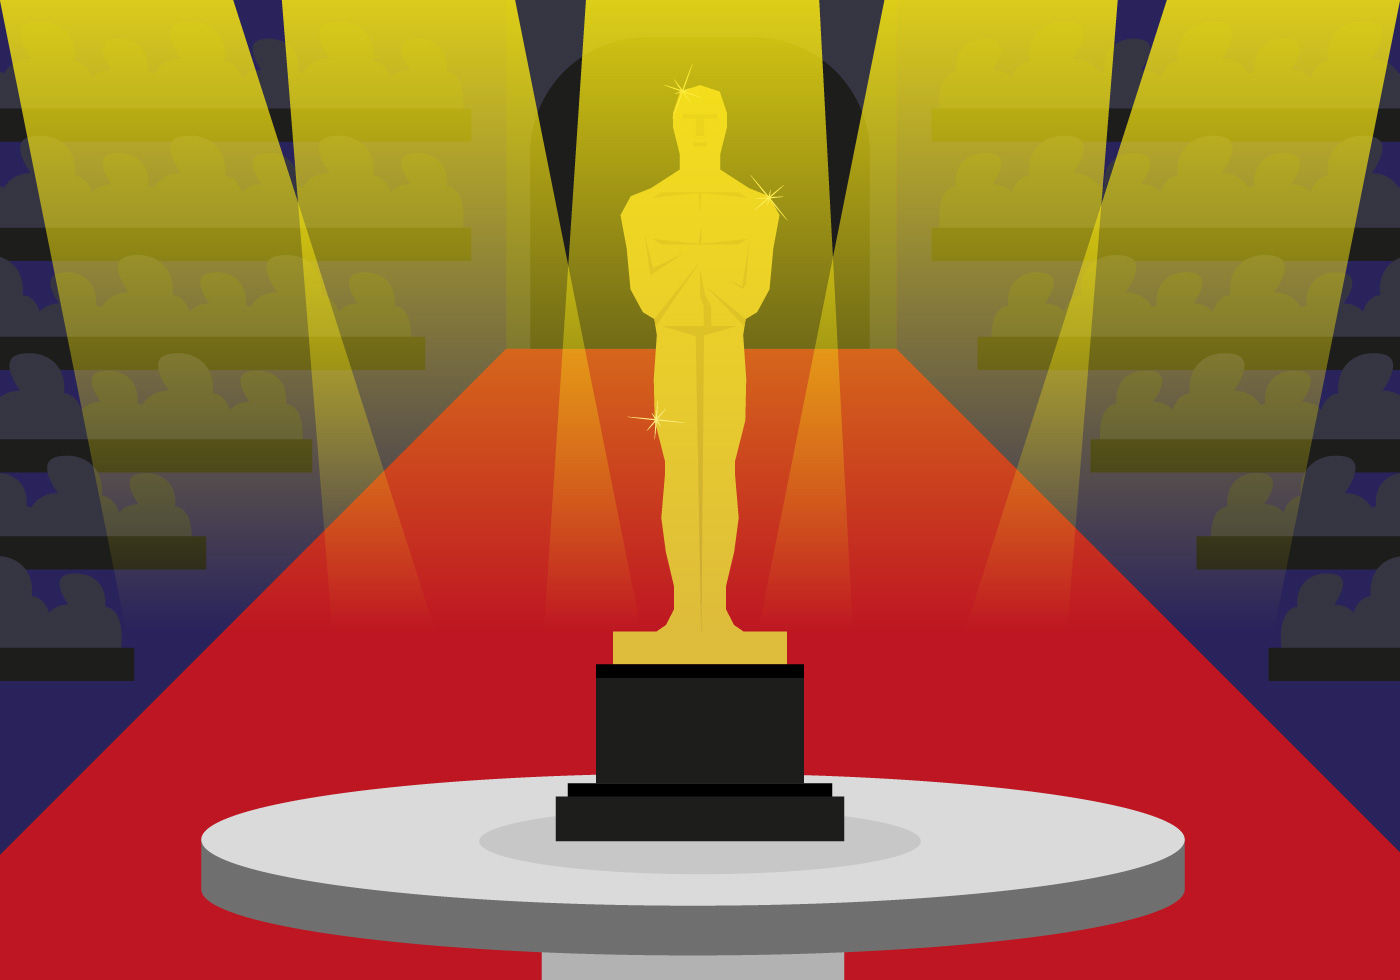 And Oscar Goes To Nine Awesome And besides Search further Red Carpet Dresses Revealing Naked Pictures n 4225517 further Dune as well All Star Award Clipart. on oscar award presentation of